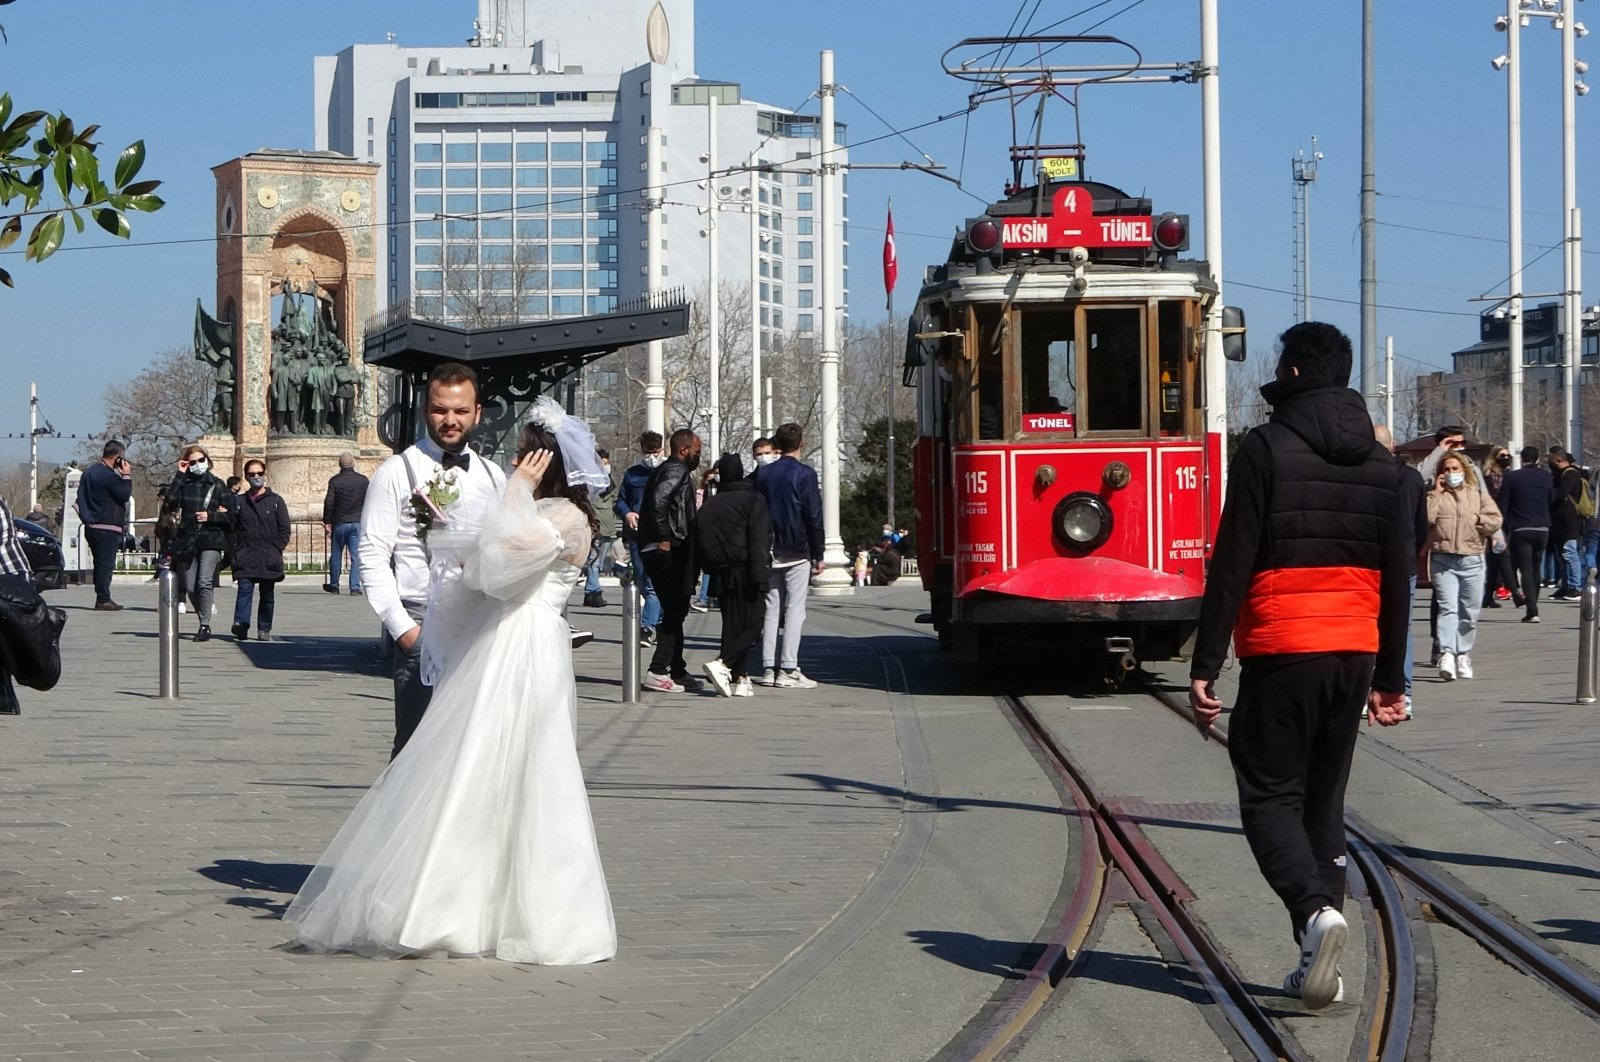 A newlywed couple poses for a photo in Istanbul's famous Taksim Square as people enjoy the first Saturday without a lockdown, March 6, 2021. (IHA Photo)